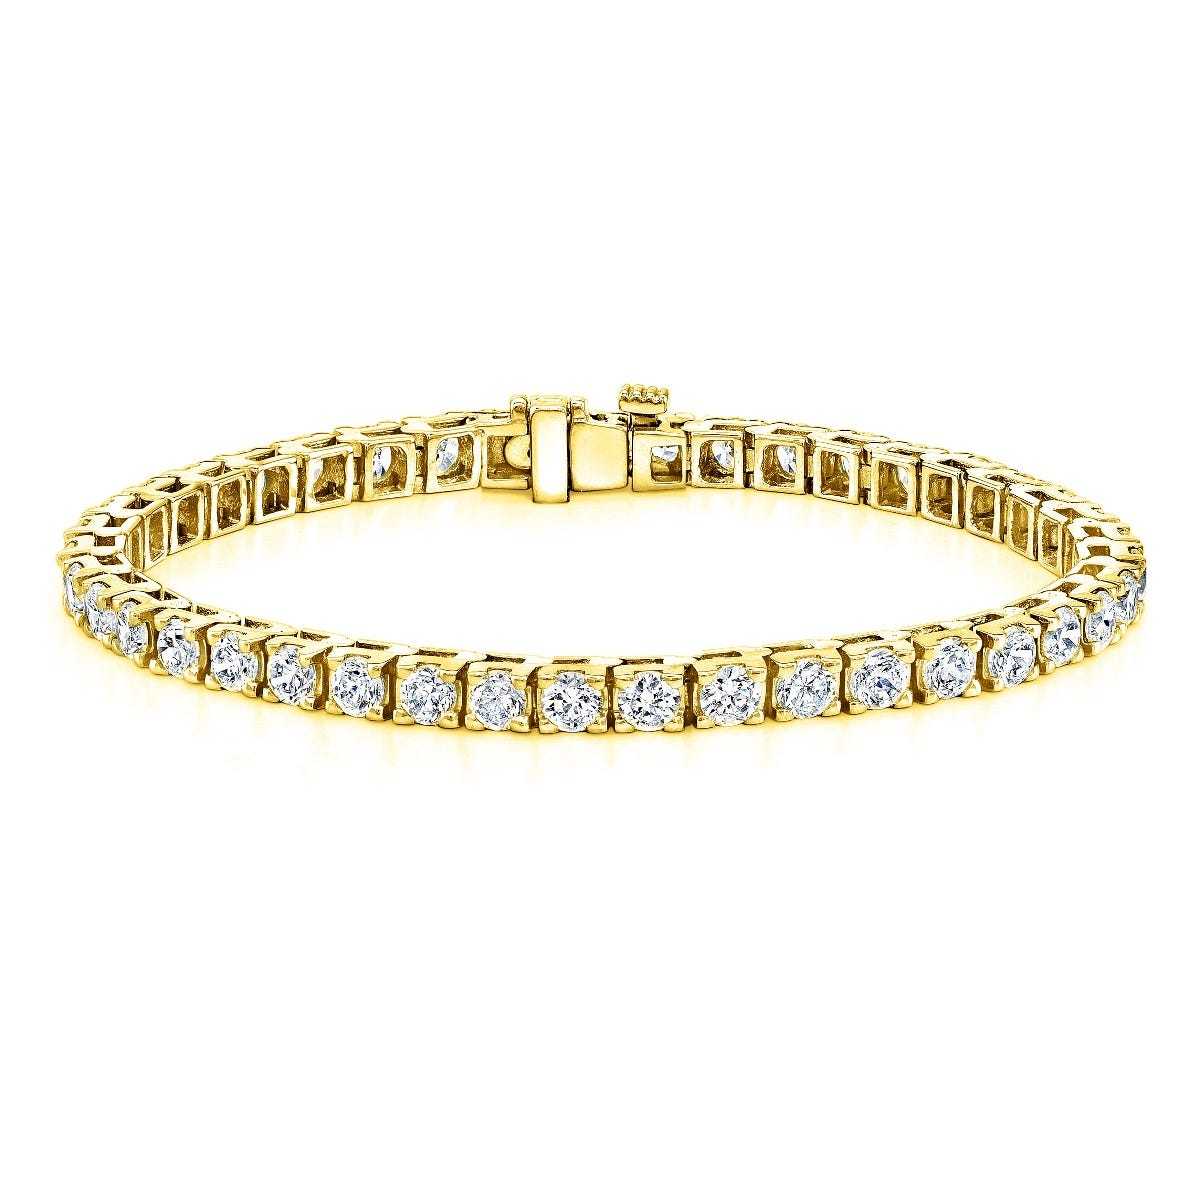 9ctw. 4-Prong Square Link Diamond Tennis Bracelet in 14K Yellow Gold (HI, SI1-SI2)